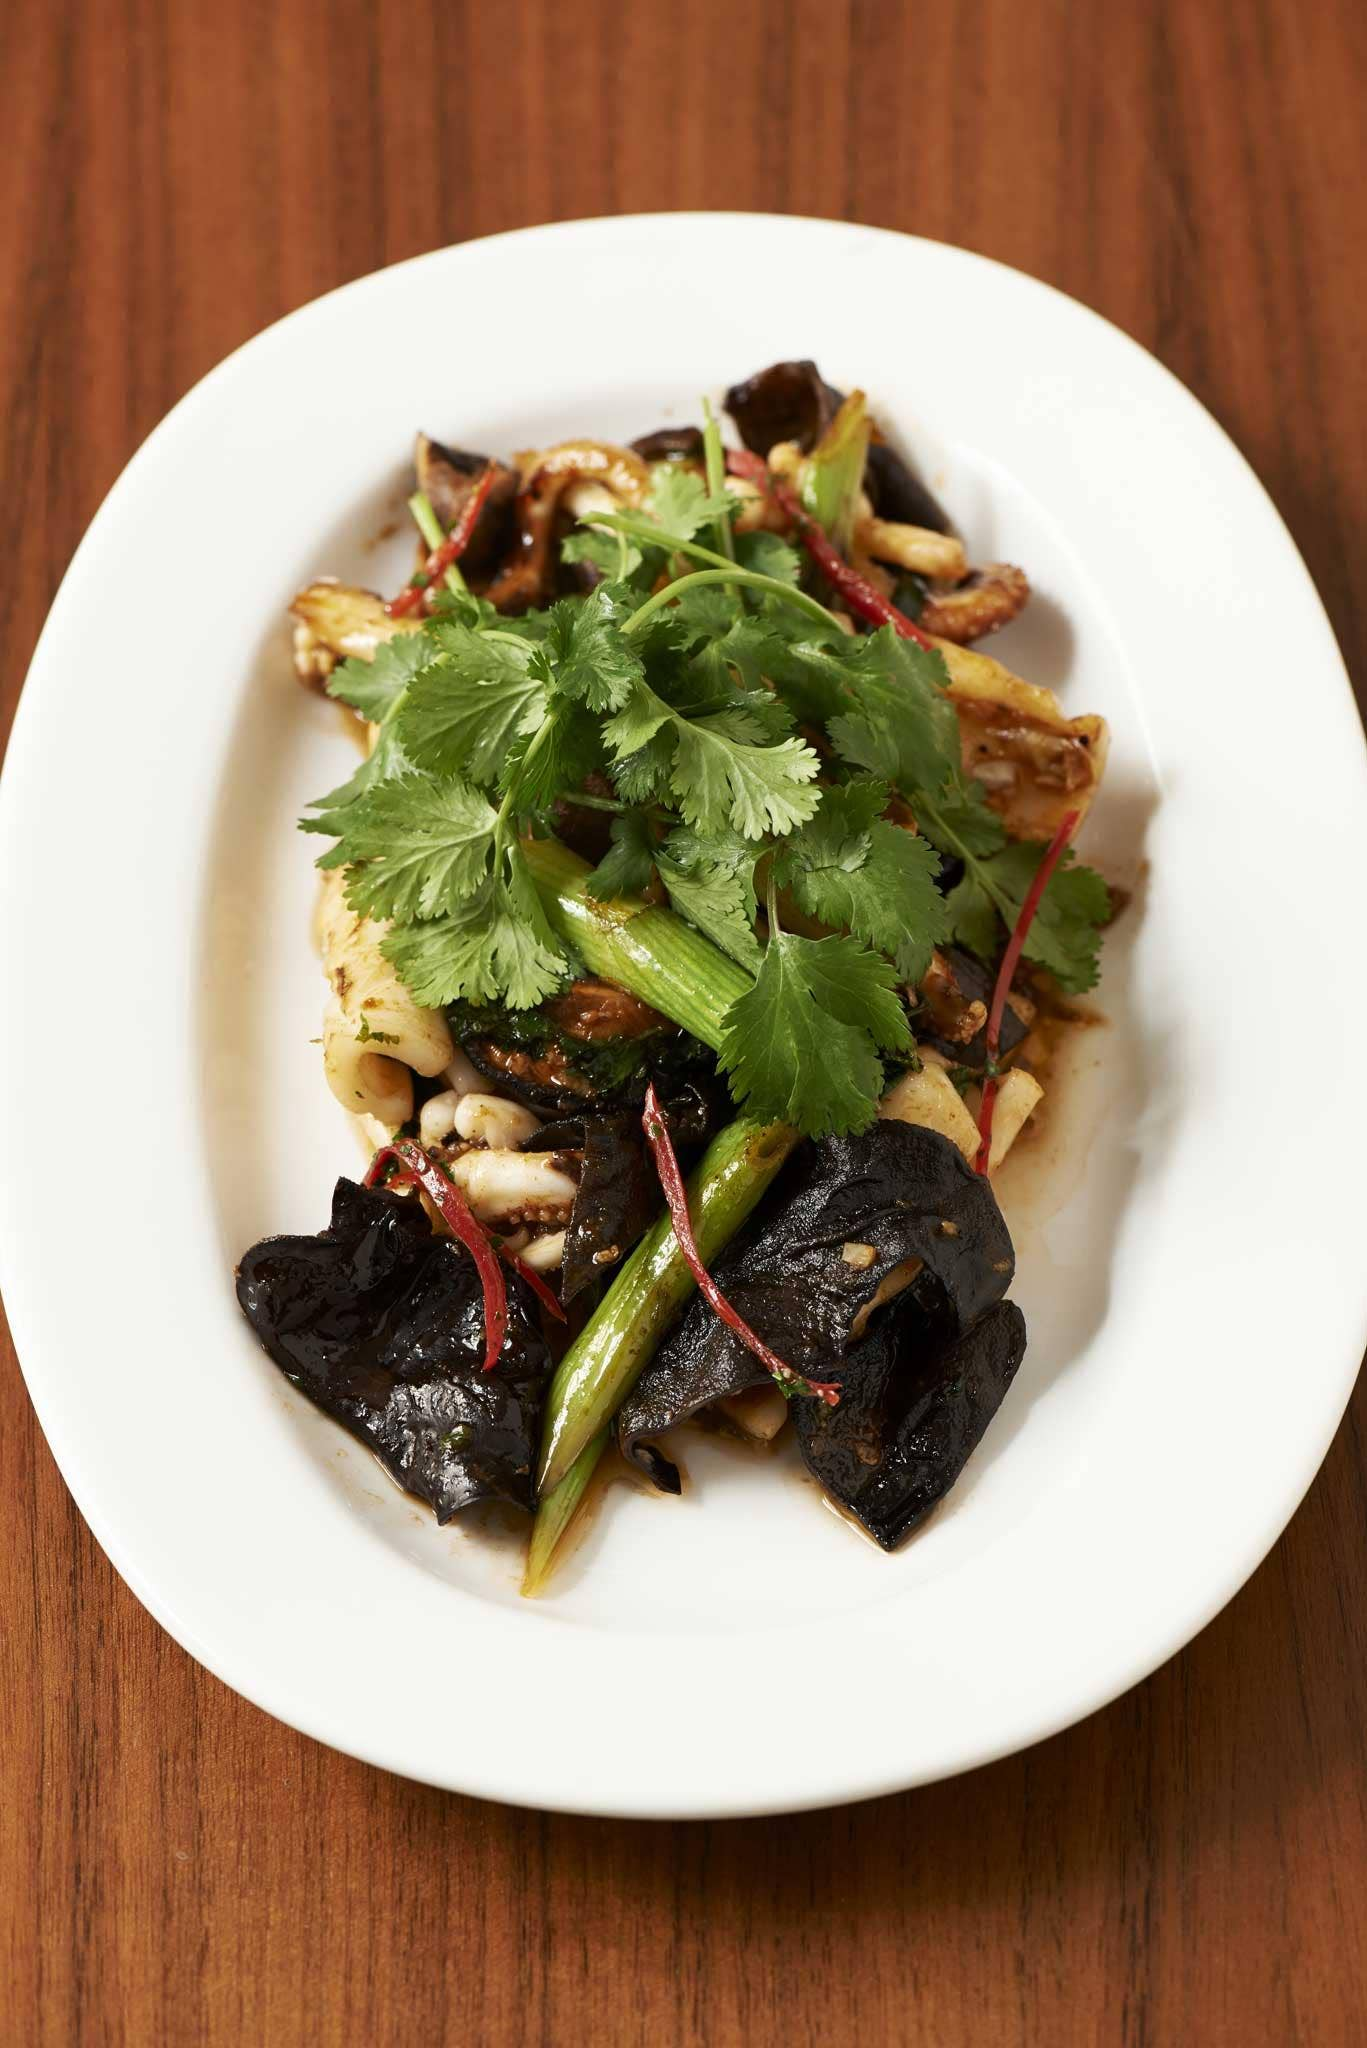 Stir fried squid with green onions, ginger and mushrooms